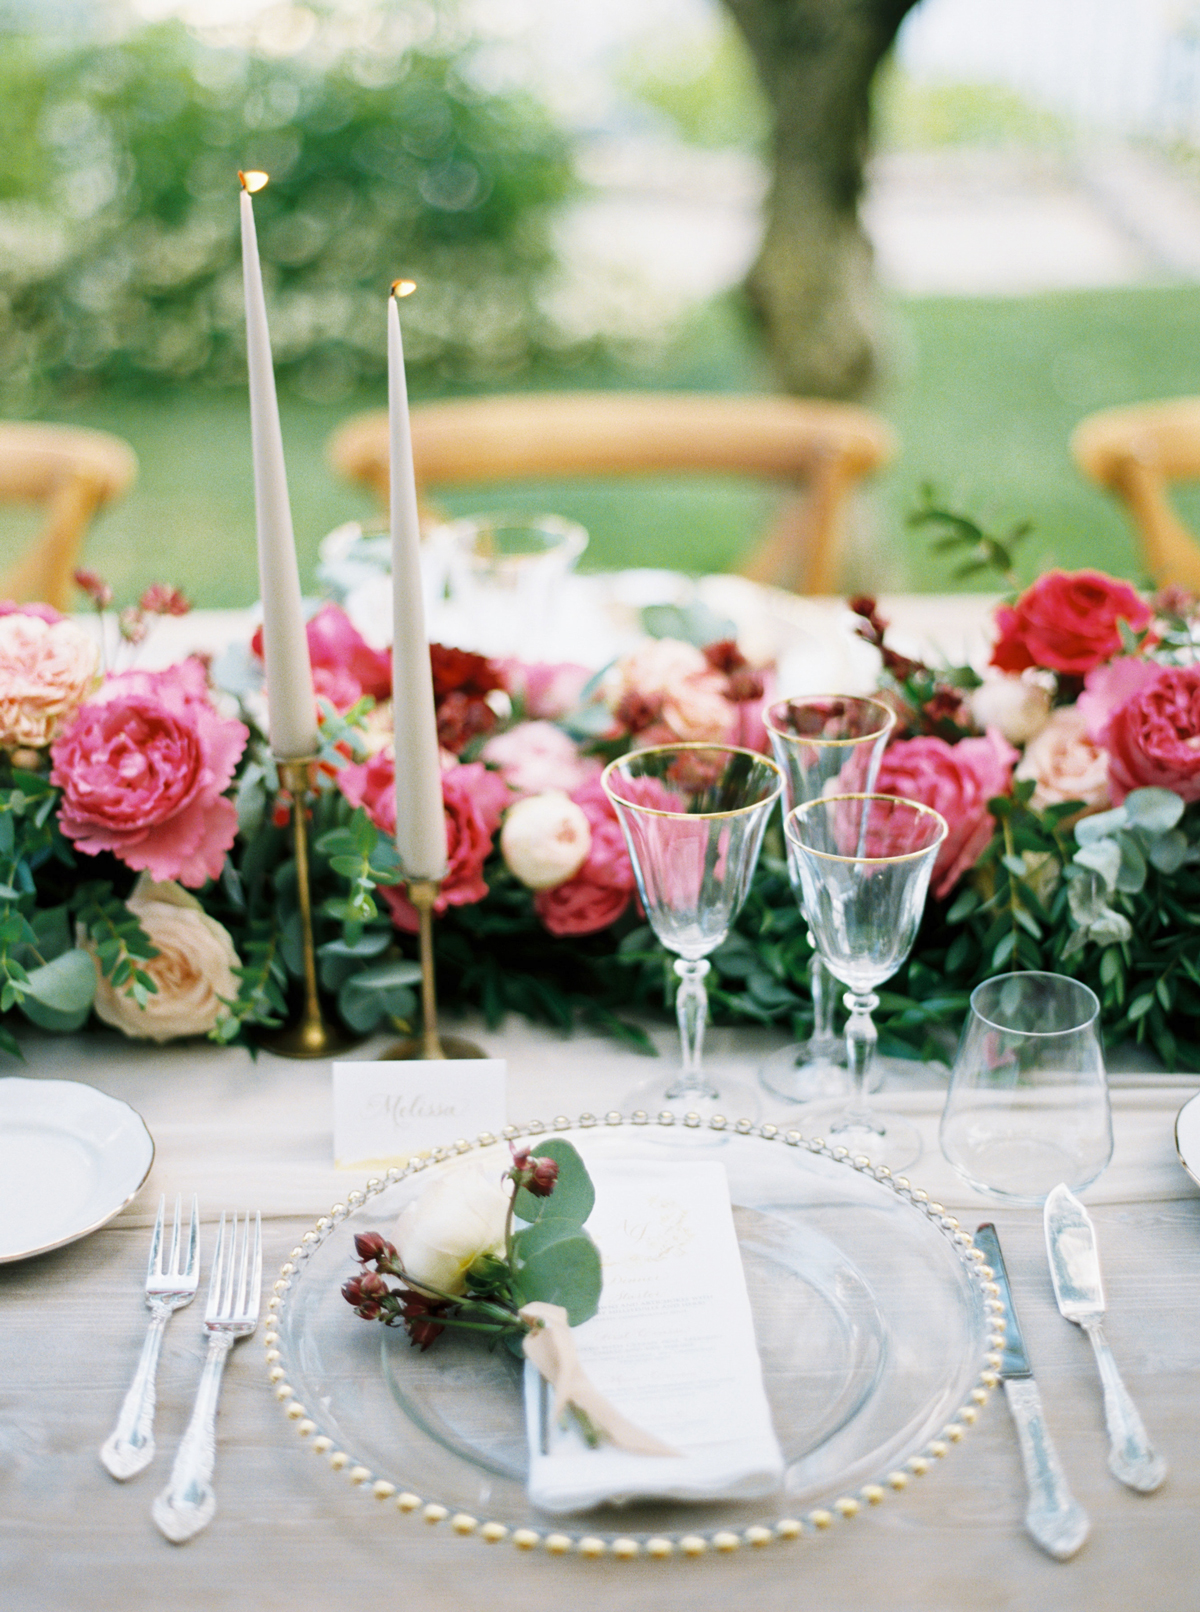 allie and joe italy wedding place setting with gold-rimmed plates topped with white roses